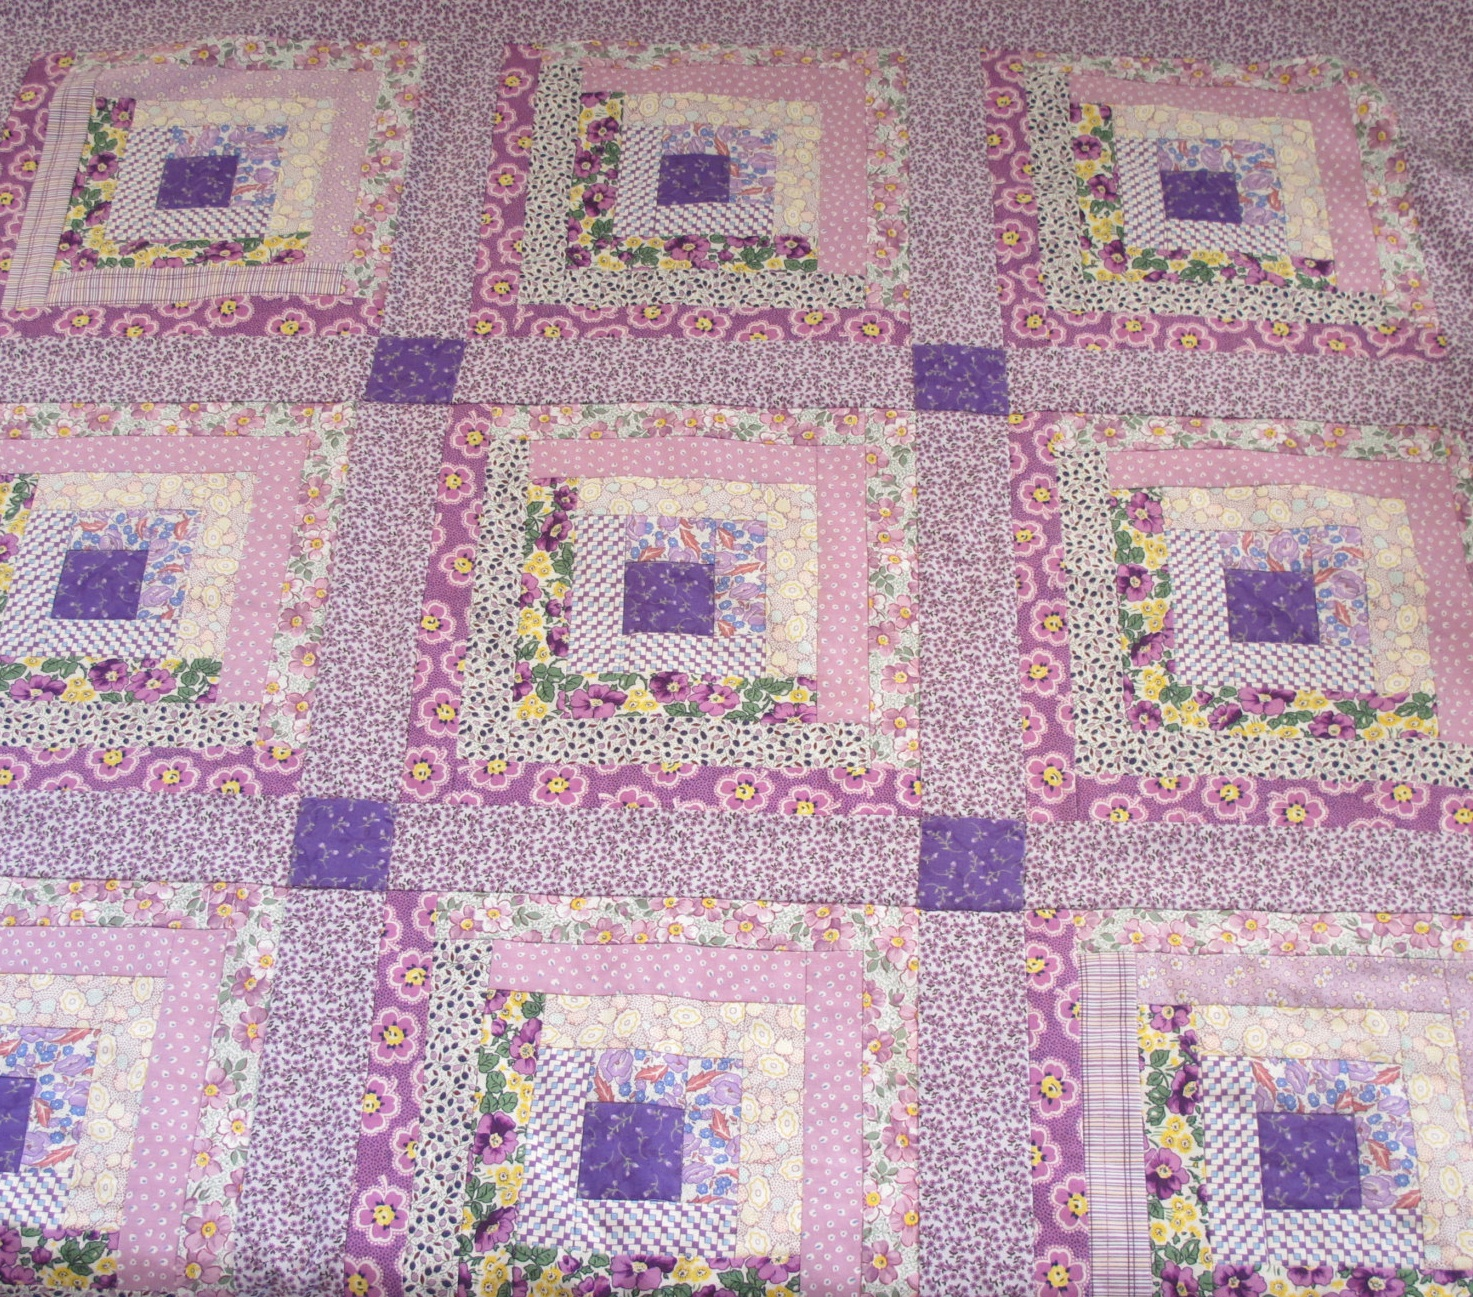 Sentimental Baby Log Cabin Quilt And 1930s Reproduction